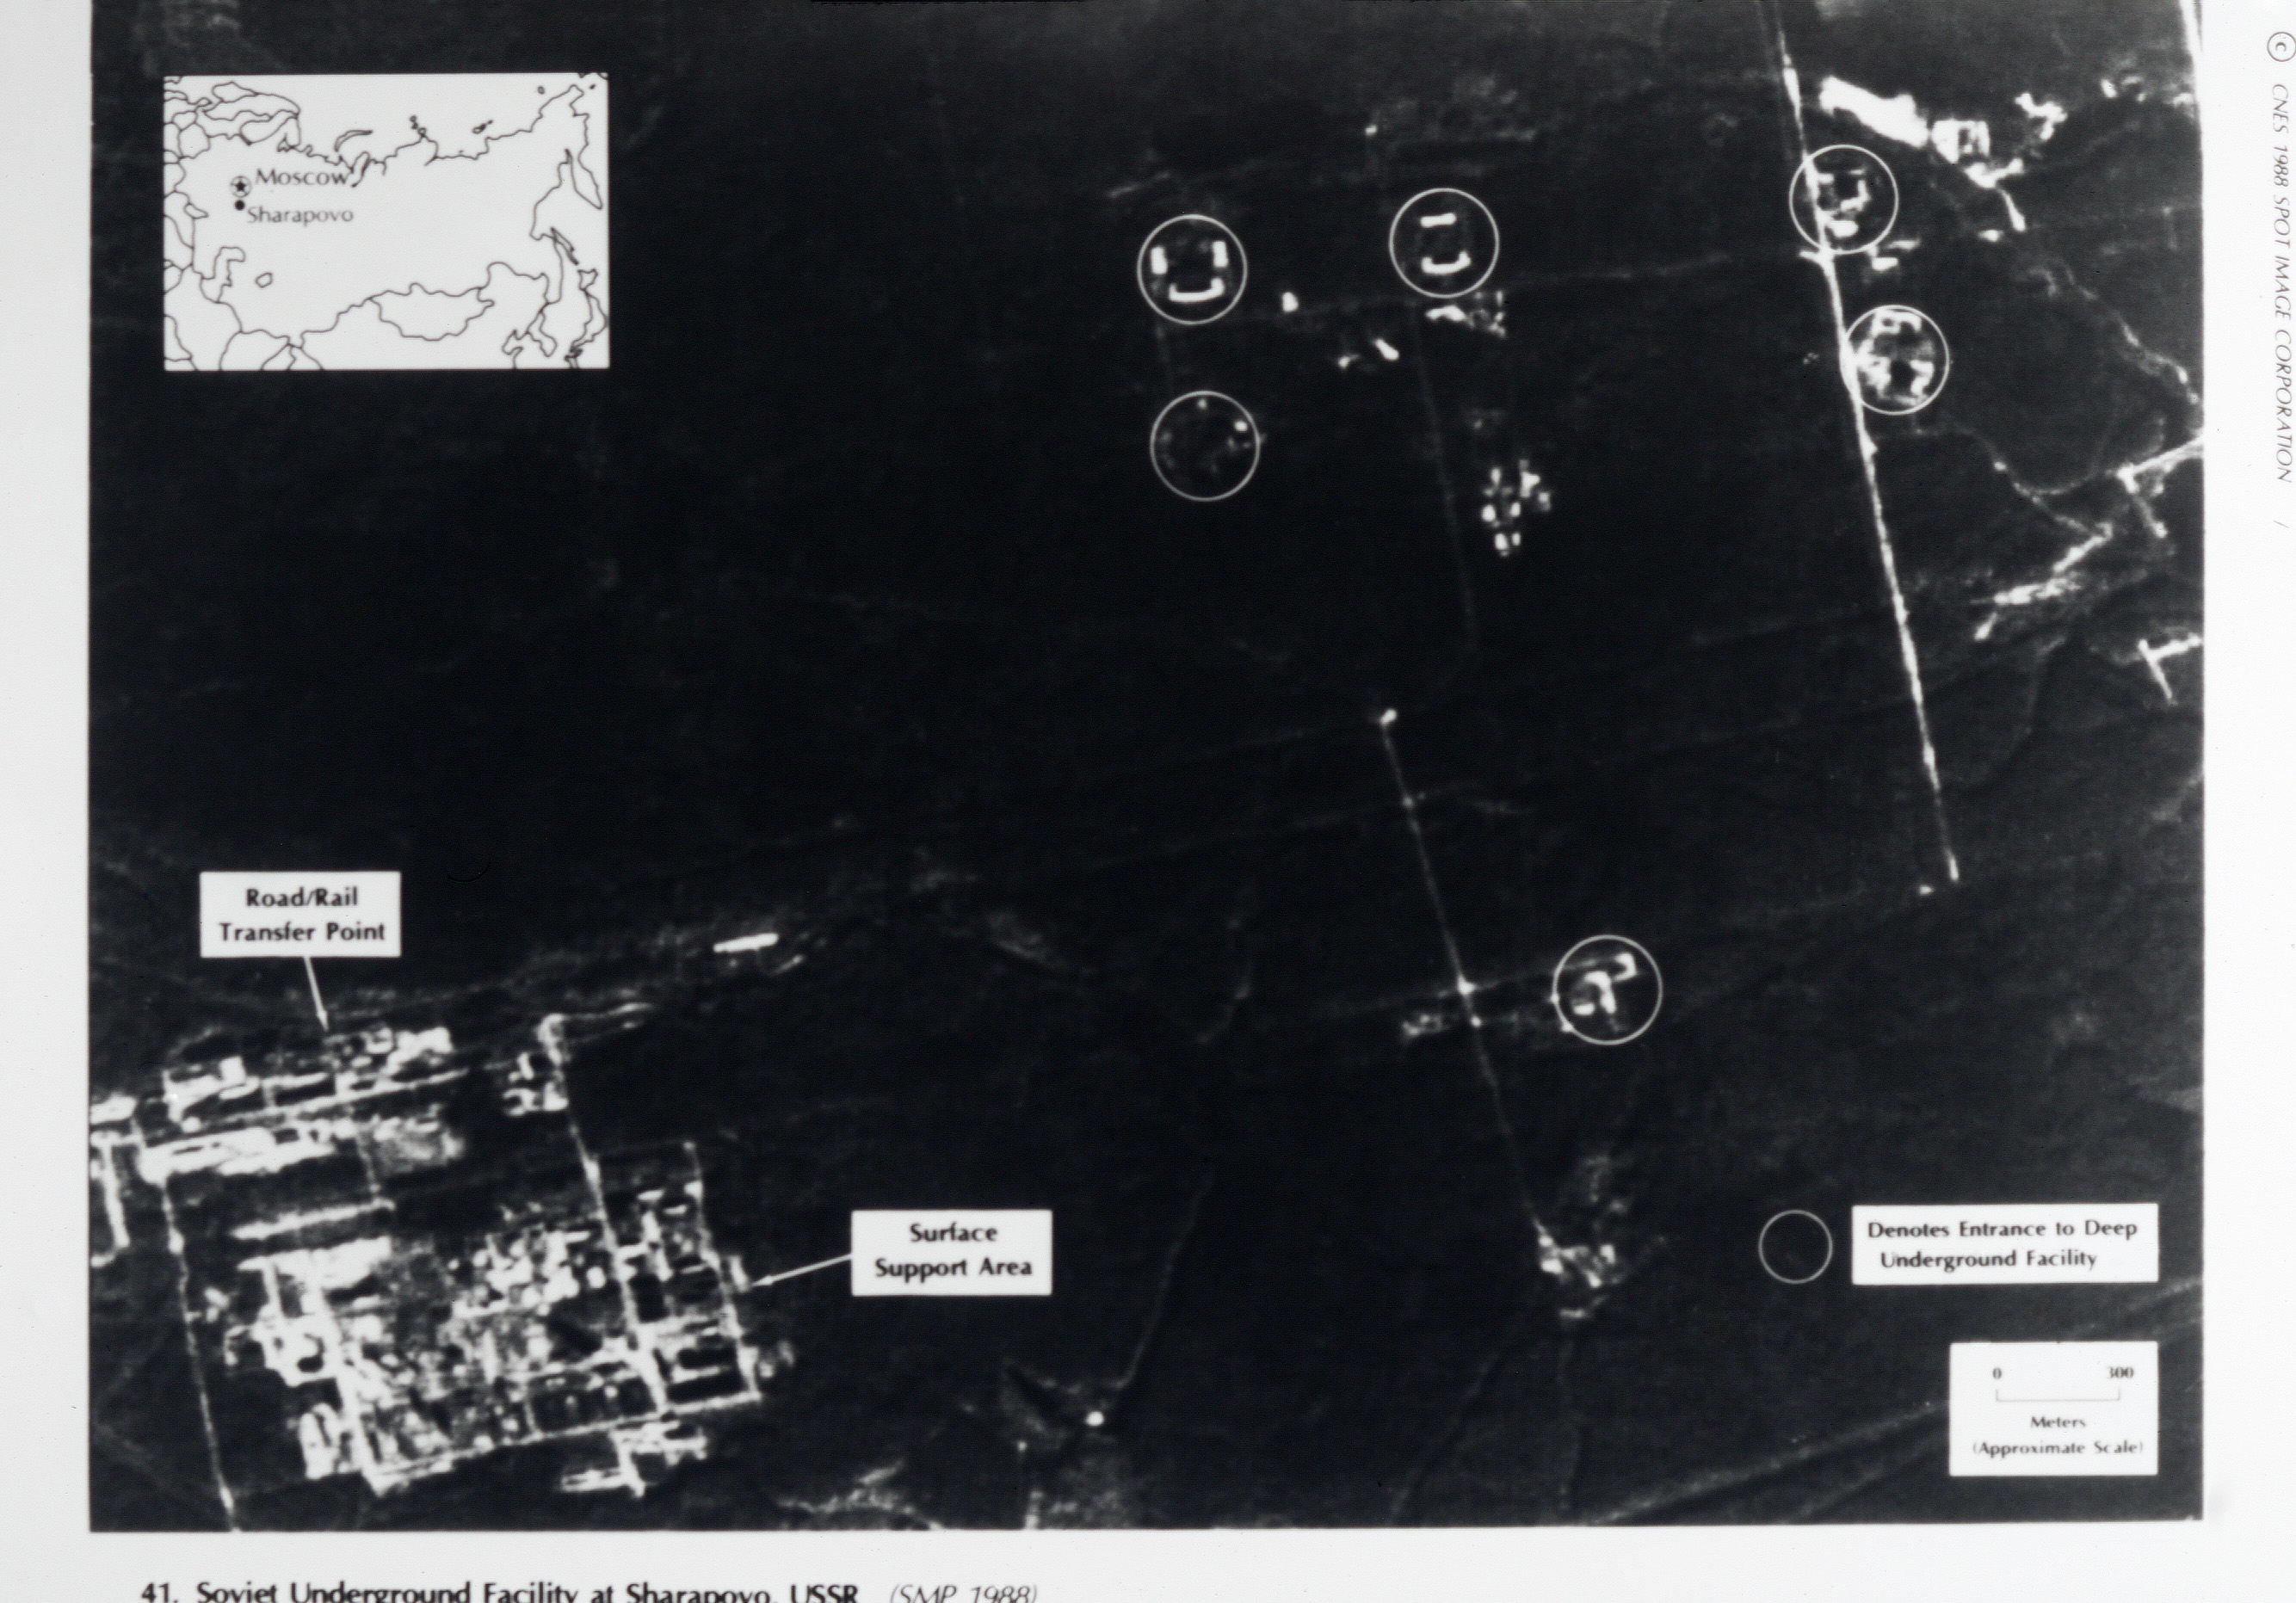 An aerial view of surface installations at the Soviet underground facility at Sharapovo. Unlike some underground facilities which are relatively shallow and can accomodate thousands of people, the shelter at Sharapovo is deep and functions as a wartime relocation center for the Soviet National Command Authority. Note: Copyright CNES 1988. SPOT Image Corporation